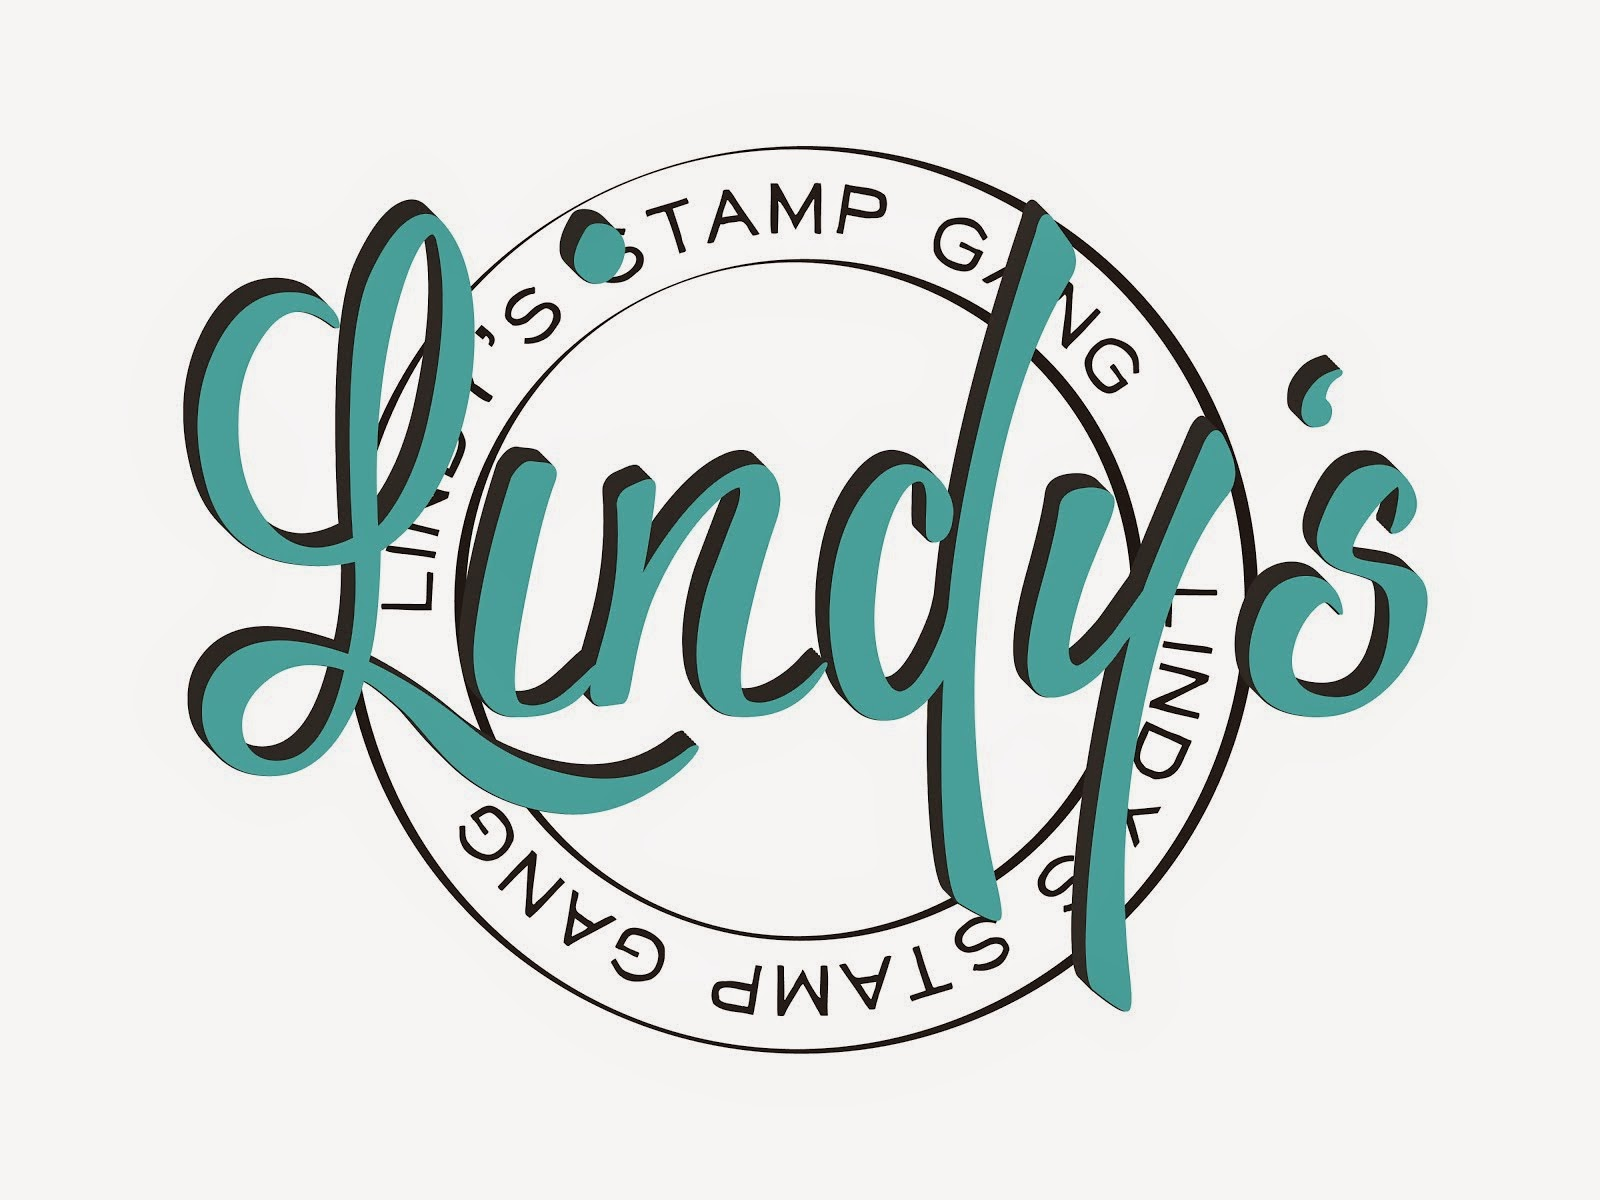 Former designer for Lindy's Stamp Gang